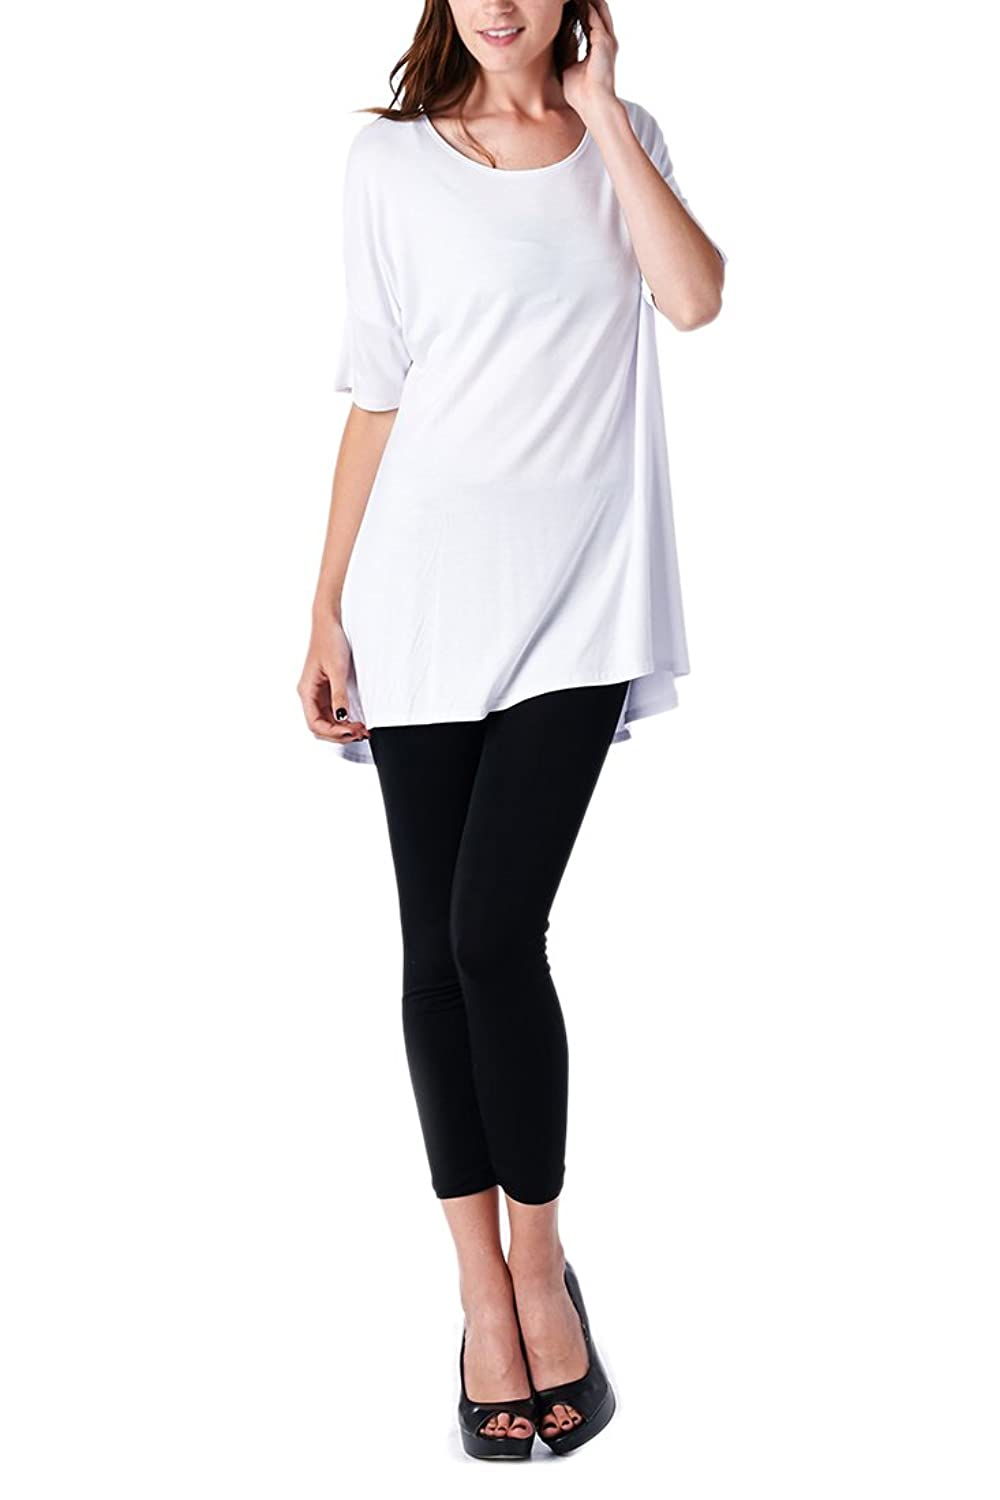 82 Days Women'S Rayon Span High & Low Short Sleeves Tunic - Solid